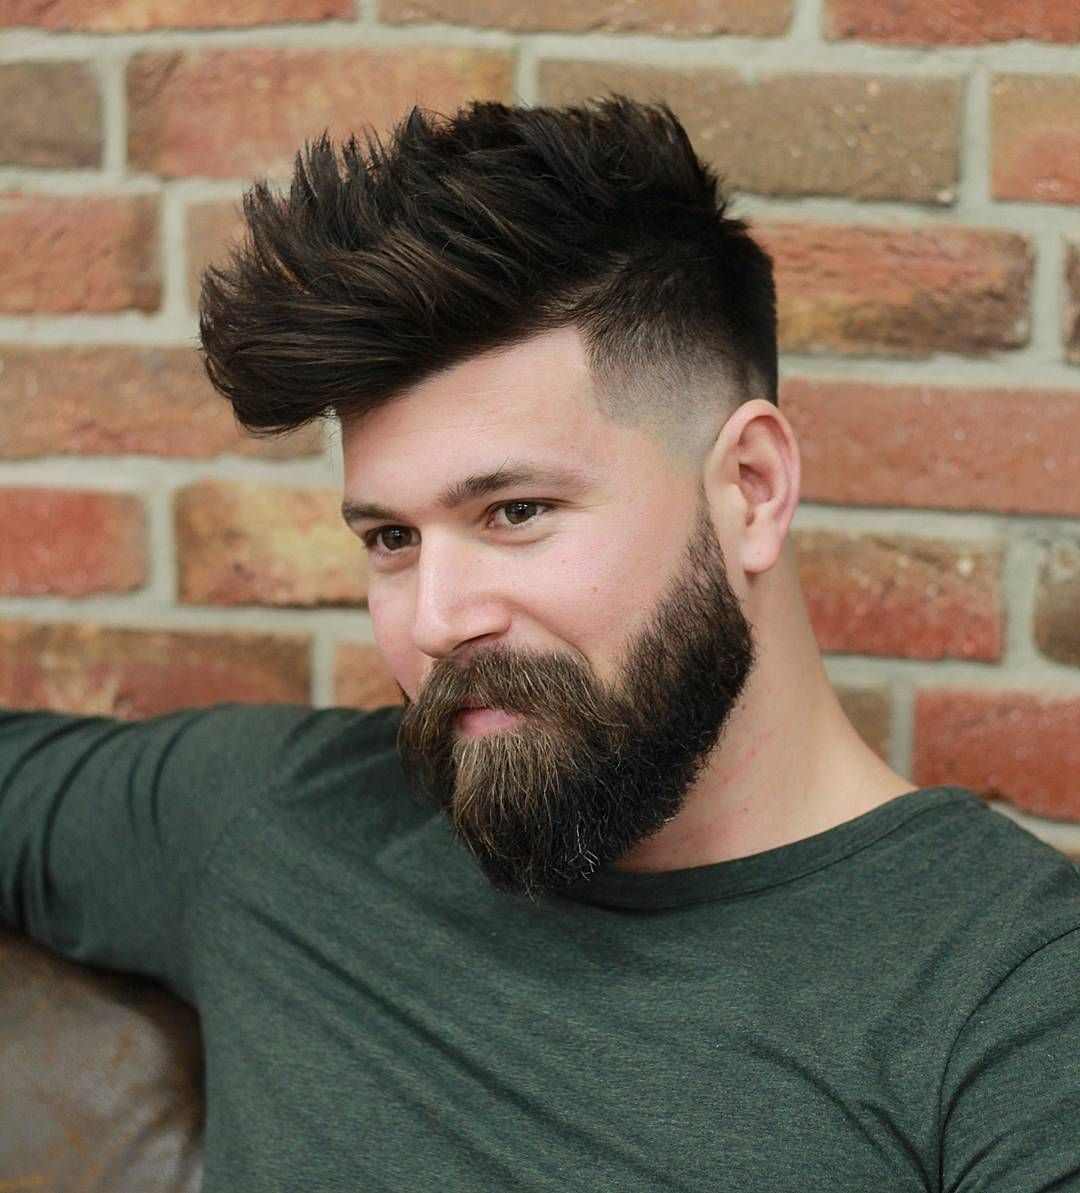 Haircuts For Men 2017 + Haircuts For Men + Cool Hairstyles For Mens +Mens  Popular Haircuts + Cool Haircuts For Boys+ Gentleman Haircuts + Hairstyles  + ...